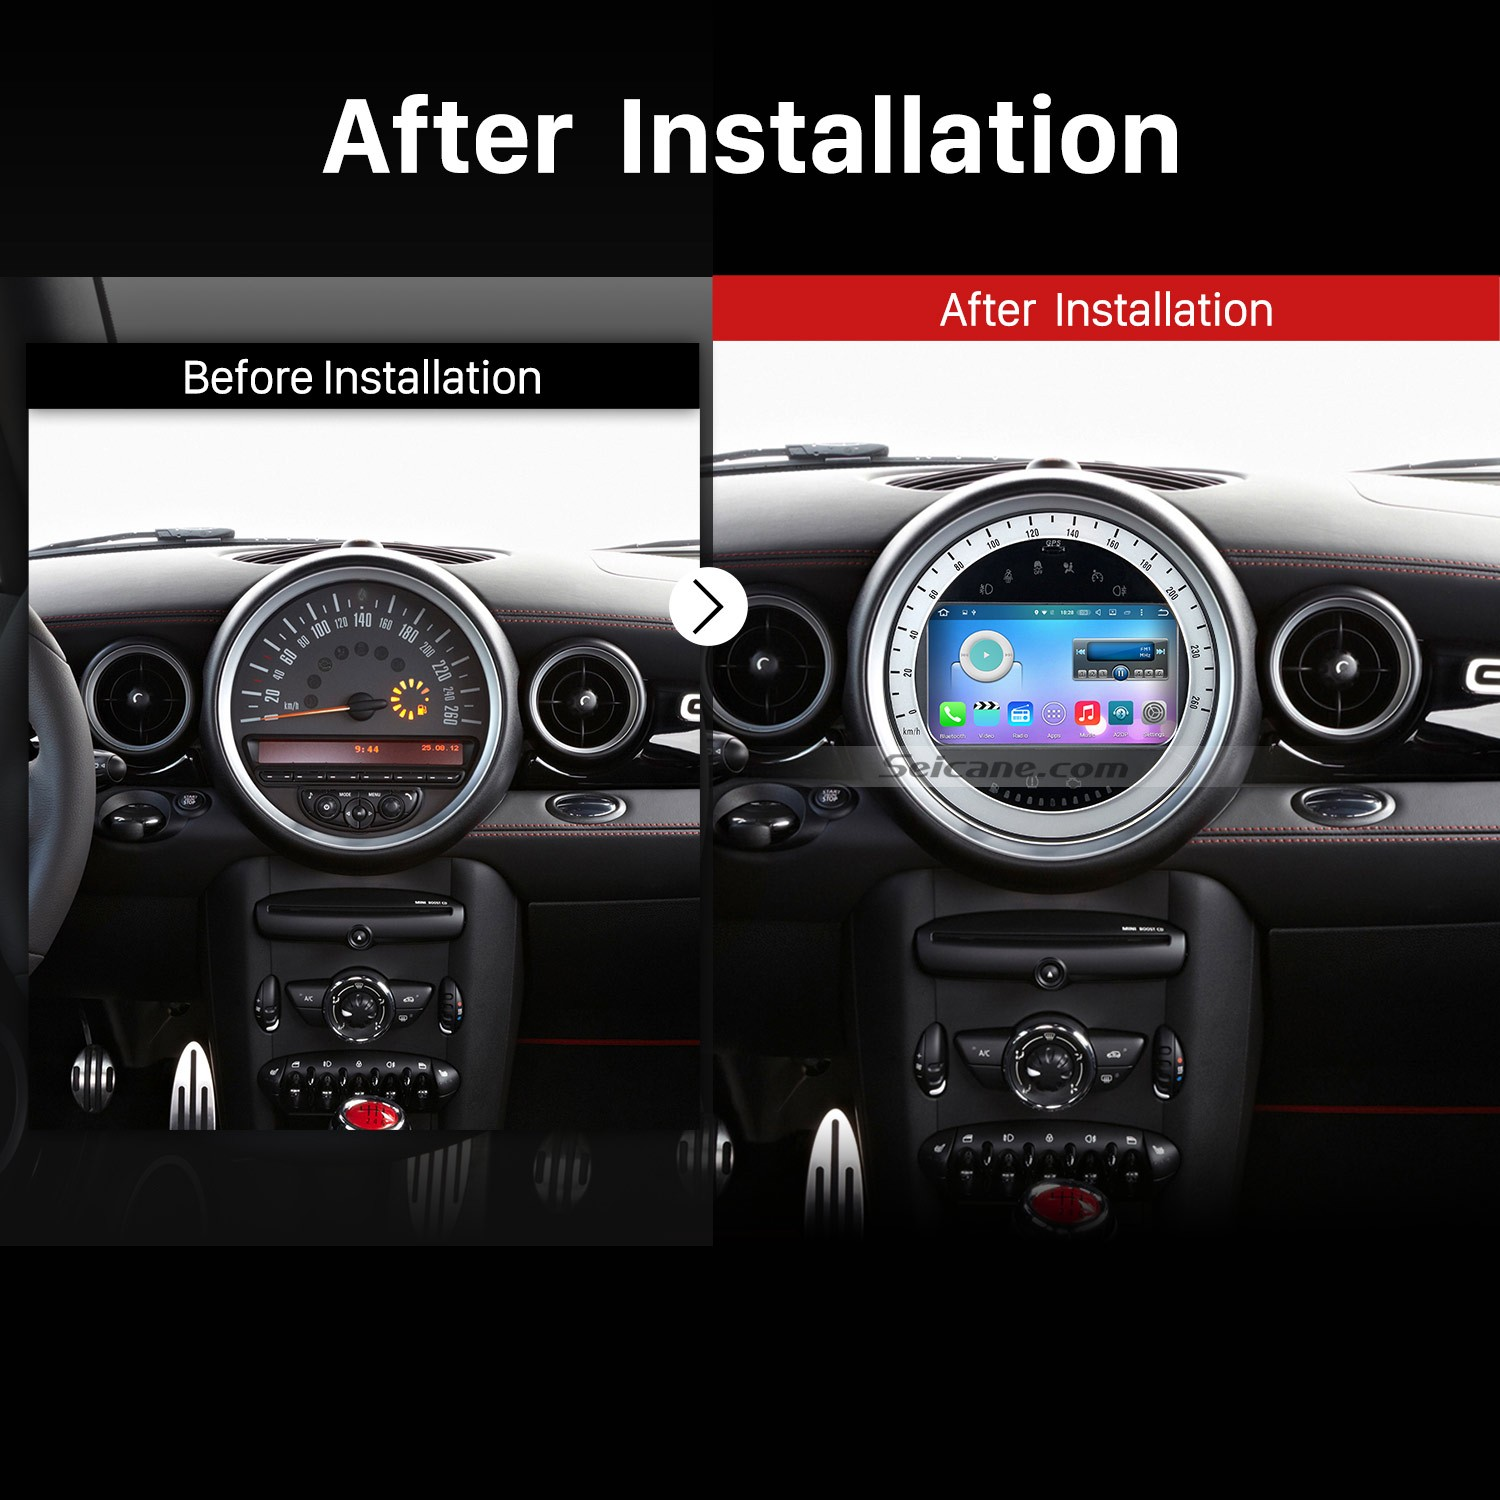 hight resolution of 2006 2013 bmw mini cooper gps bluetooth car stereo after installation